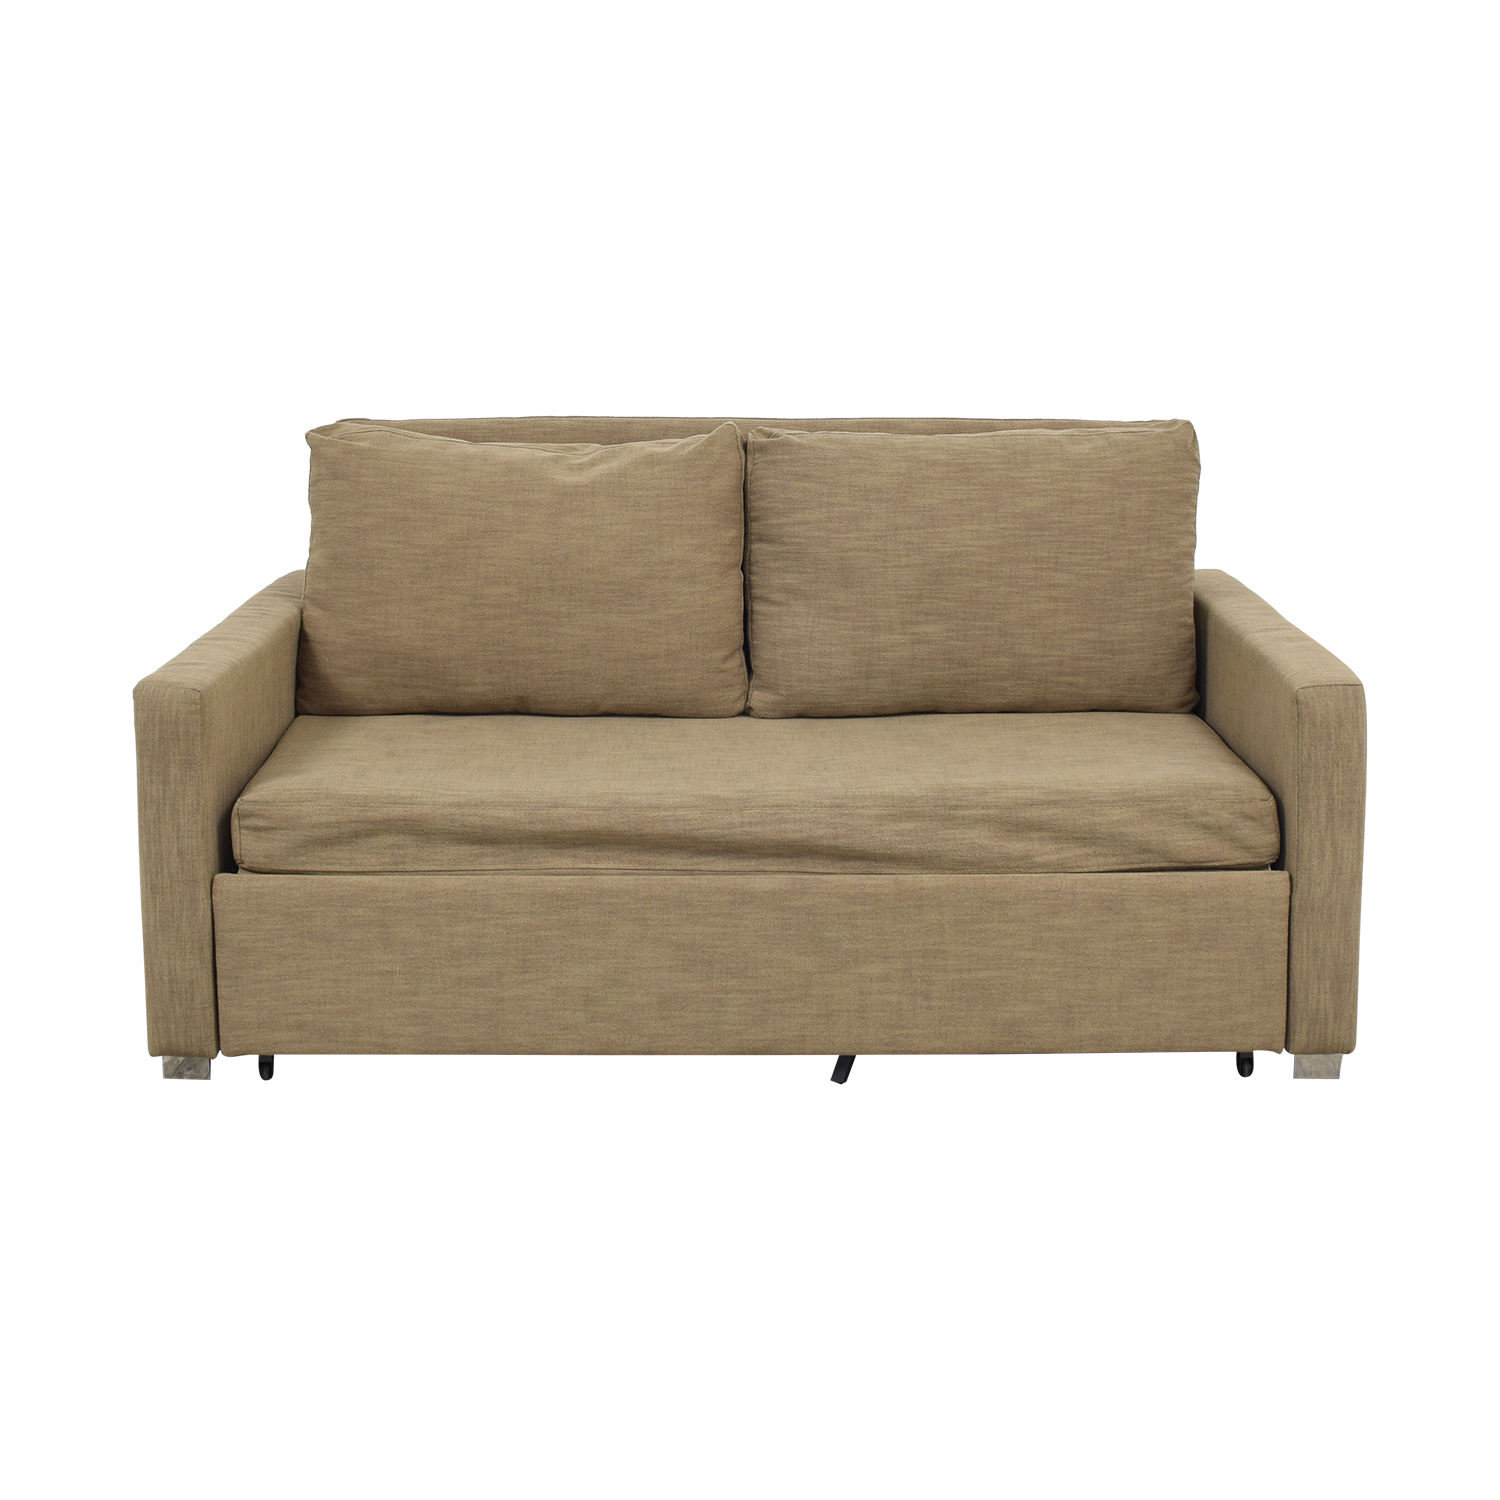 Expand Furniture Harmony Queen Sleeper Sofa price